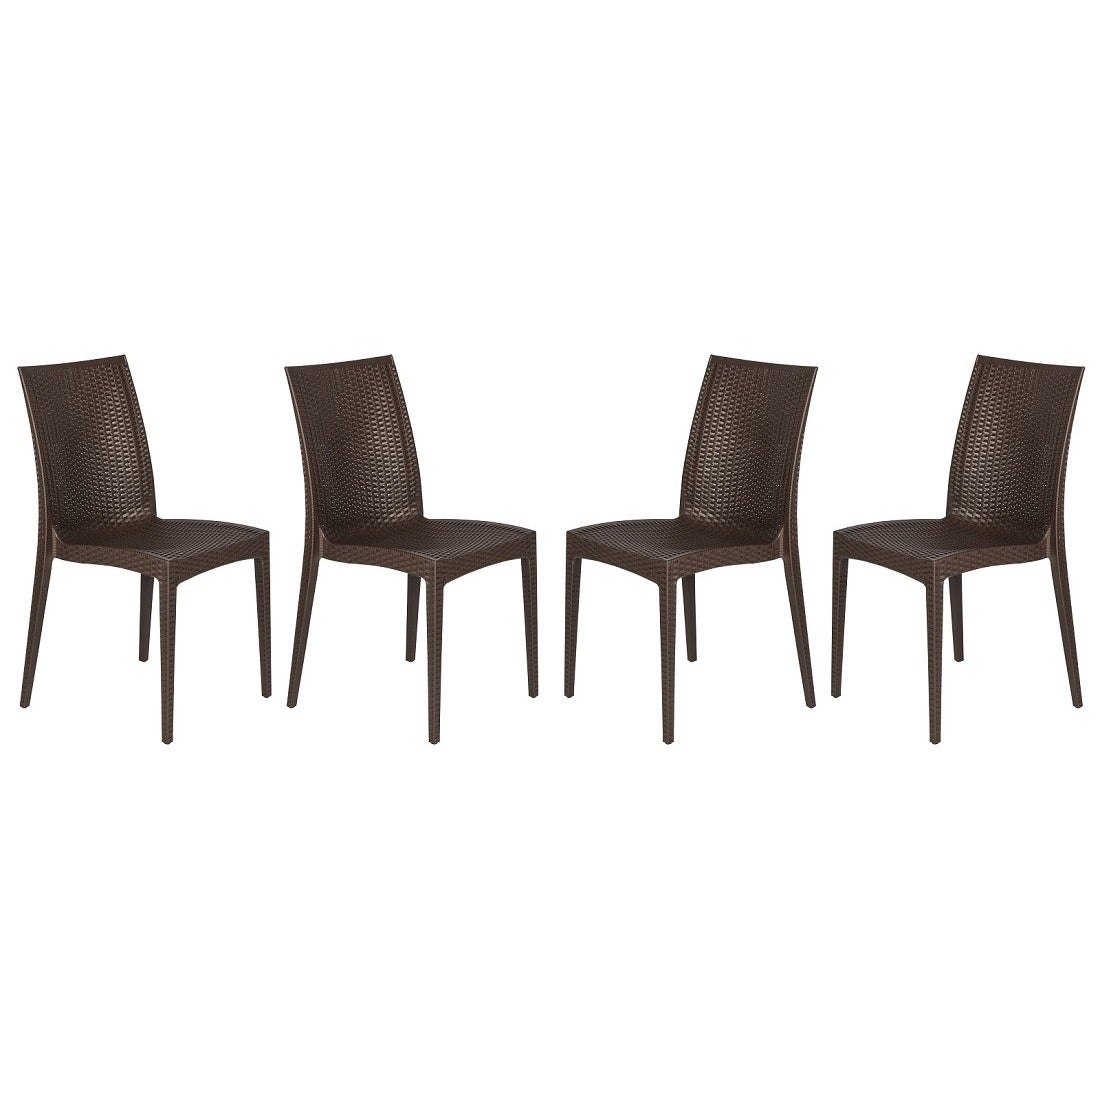 Amazing Leisuremod Weave Mace Indoor Outdoor Brown Armless Dining Chair Set Of 4 Creativecarmelina Interior Chair Design Creativecarmelinacom